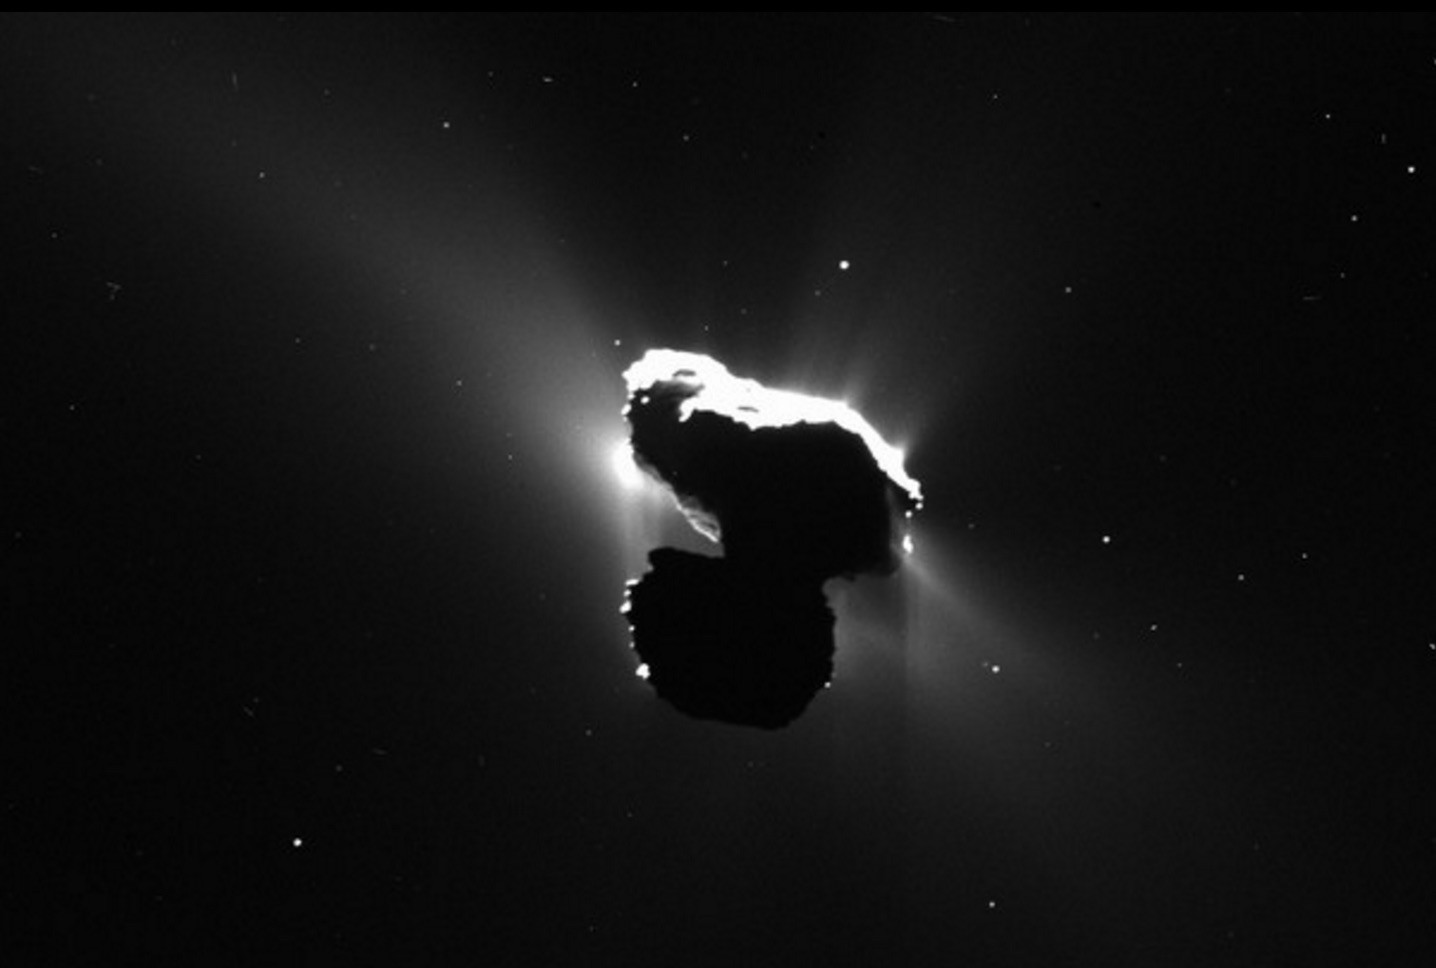 A dusty view of Comet 67P